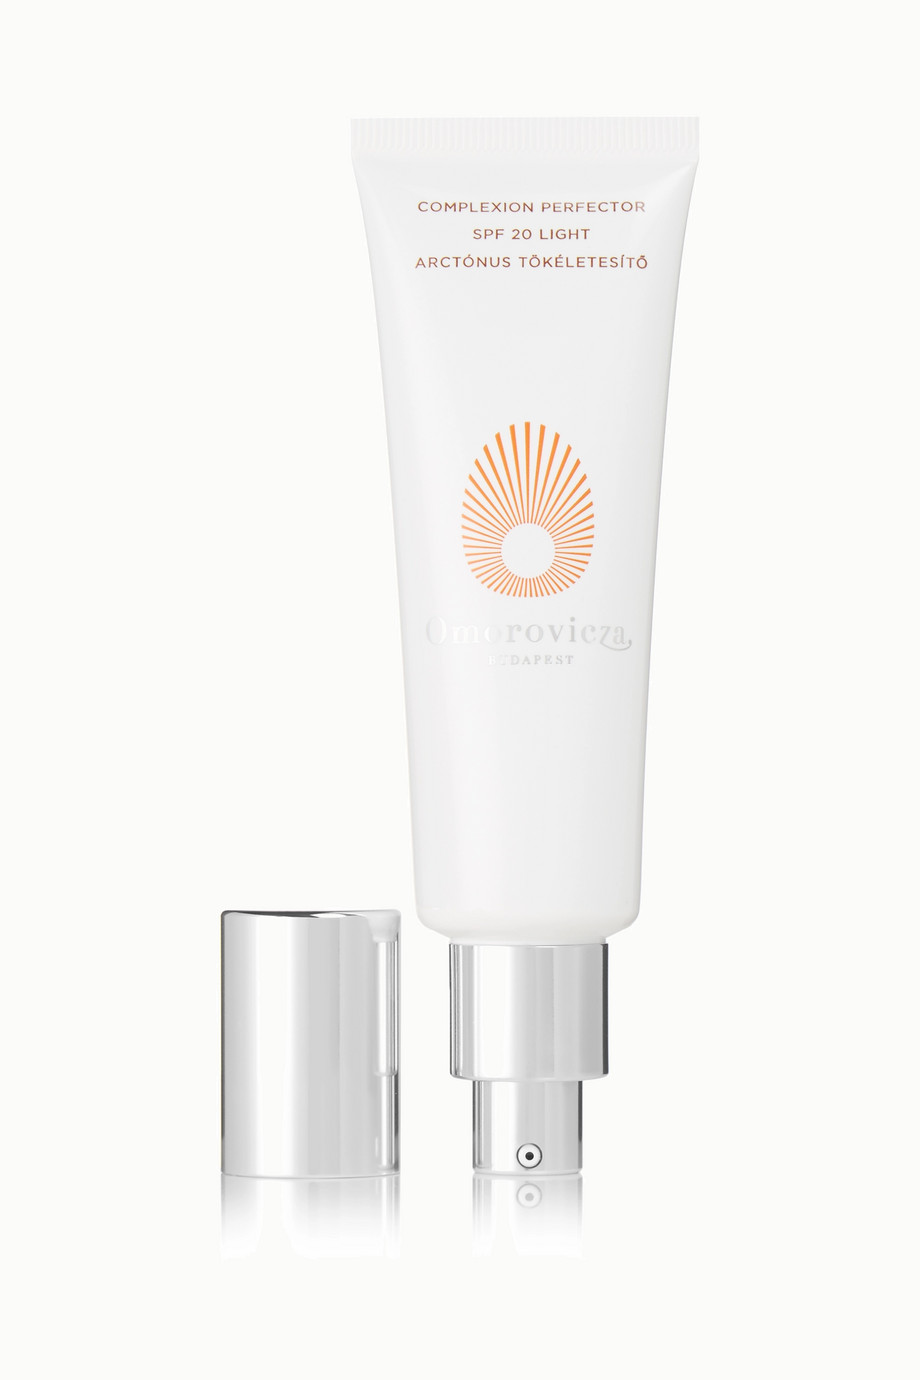 Omorovicza Complexion Perfector SPF20 - Light, 50ml